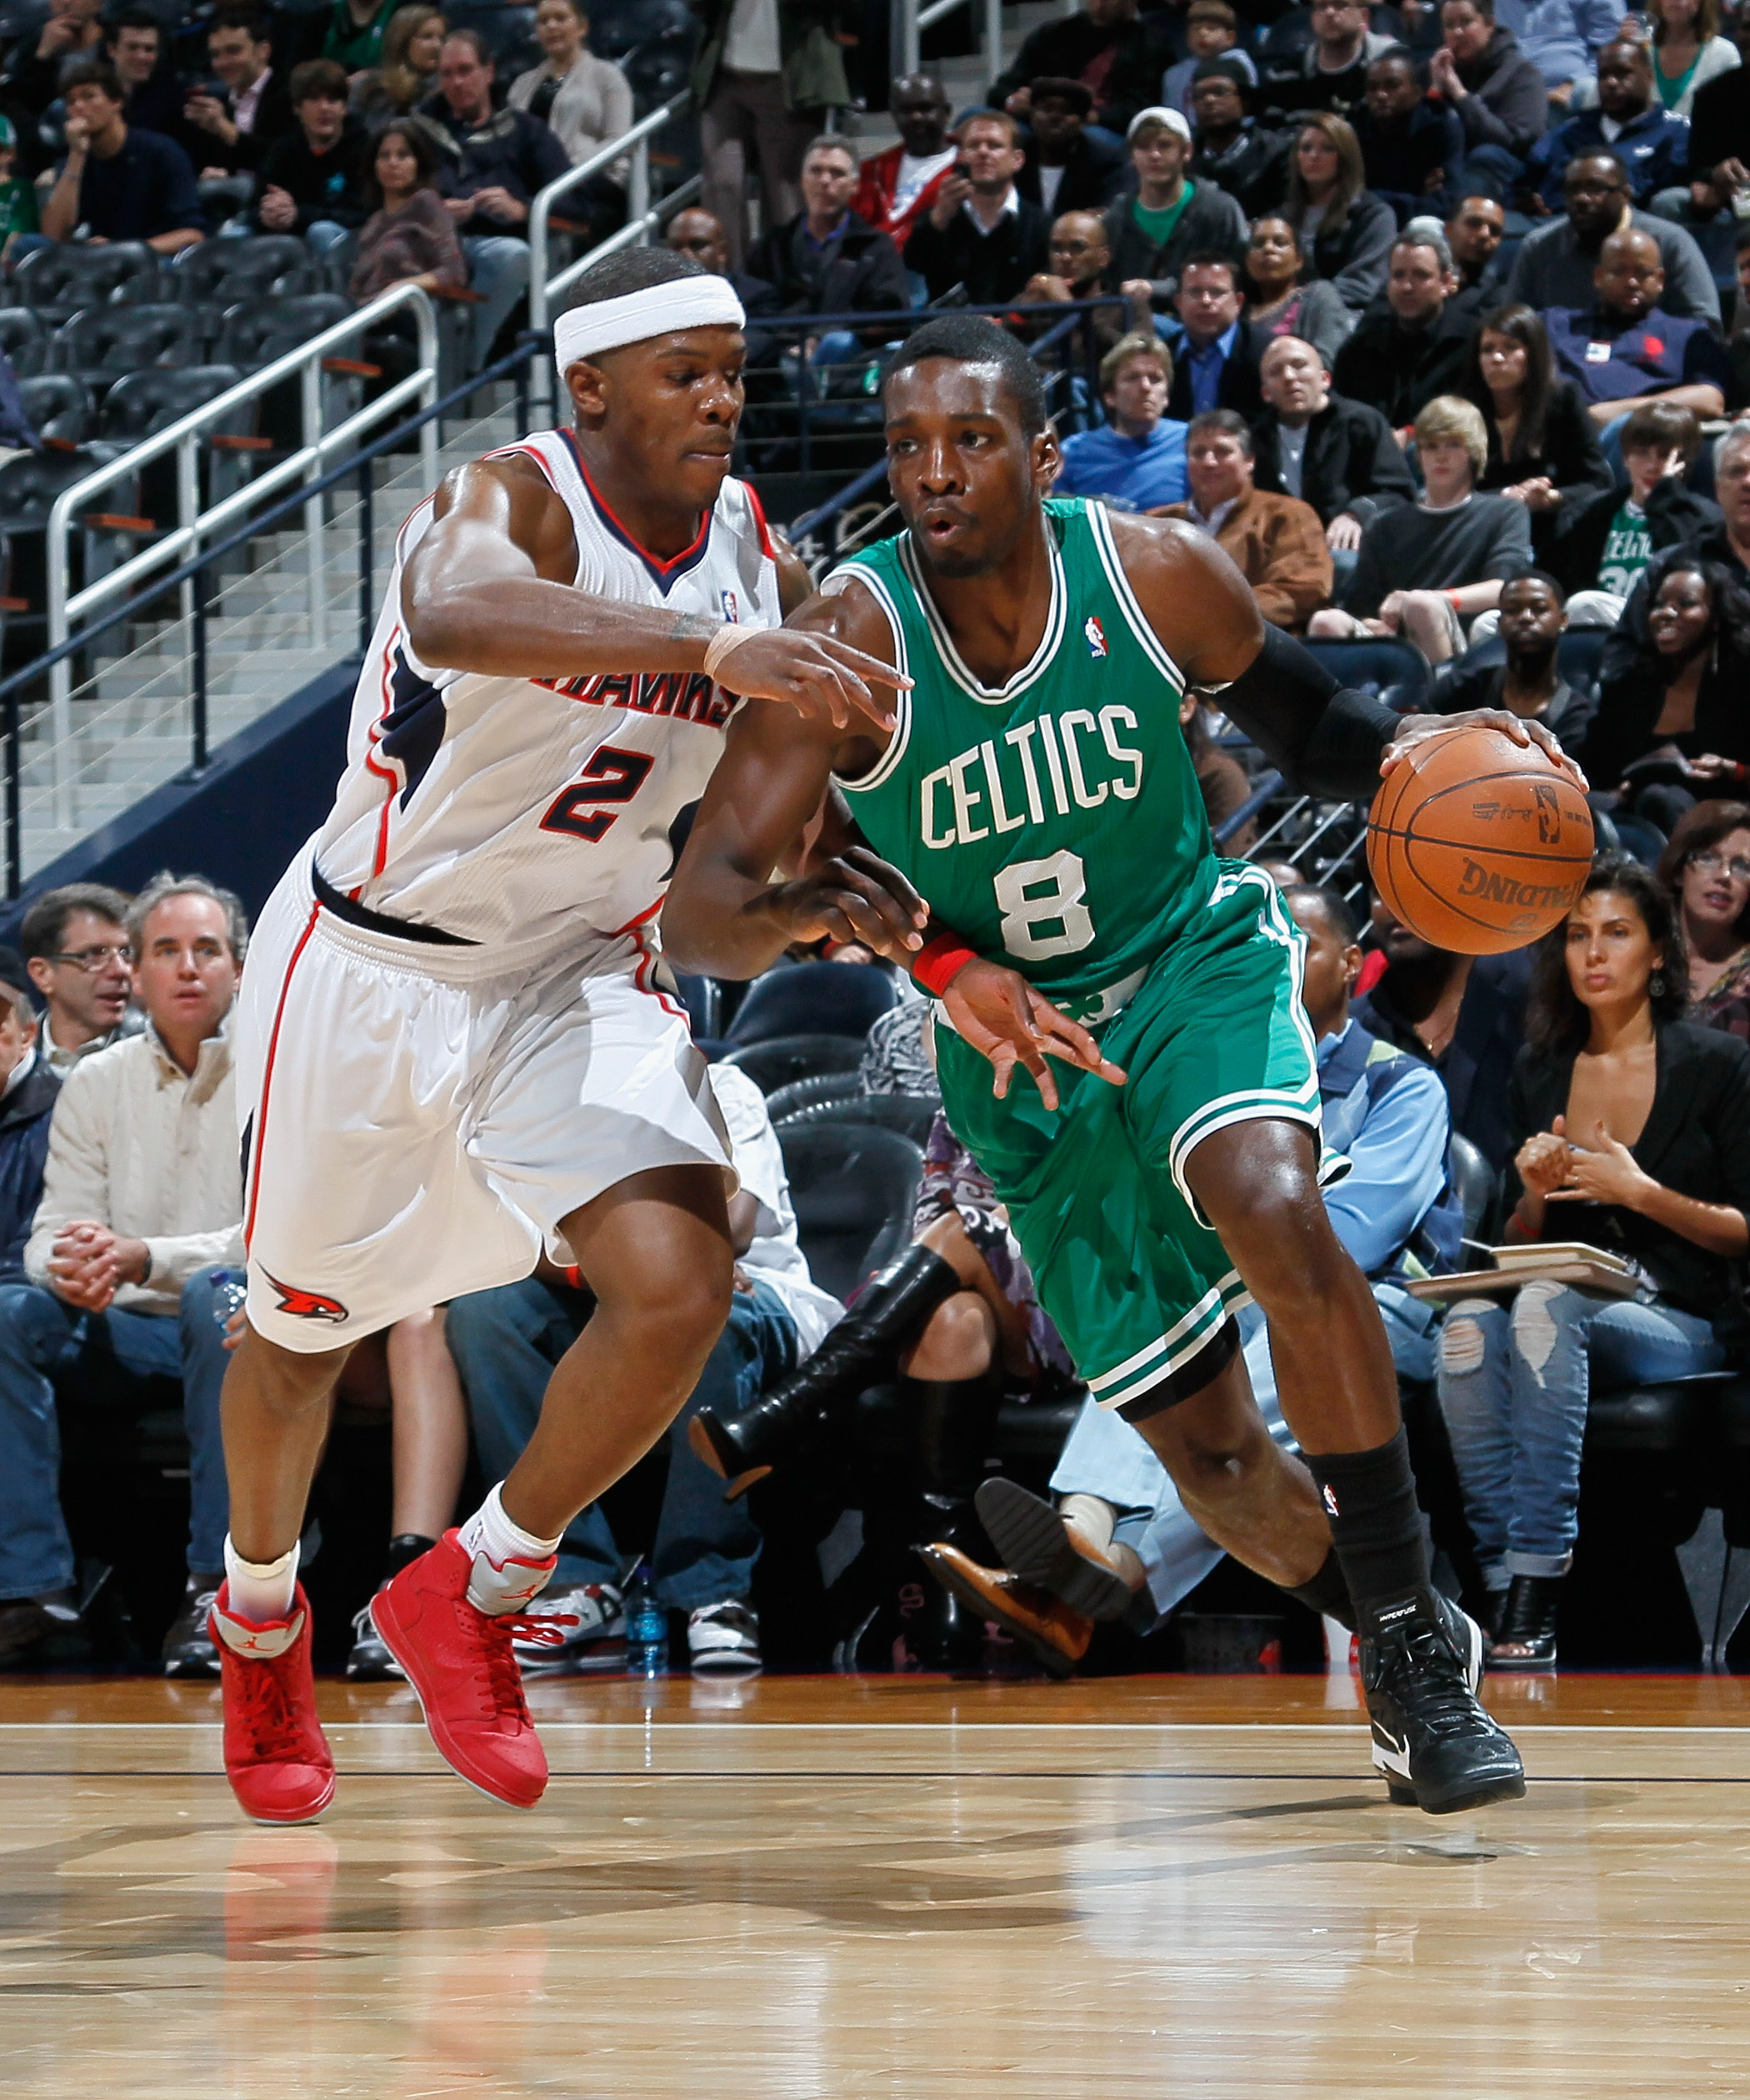 ATLANTA, GA - APRIL 01:  Joe Johnson #2 of the Atlanta Hawks against Jeff Green #8 of the Boston Celtics at Philips Arena on April 1, 2011 in Atlanta, Georgia.  NOTE TO USER: User expressly acknowledges and agrees that, by downloading and/or using this Ph